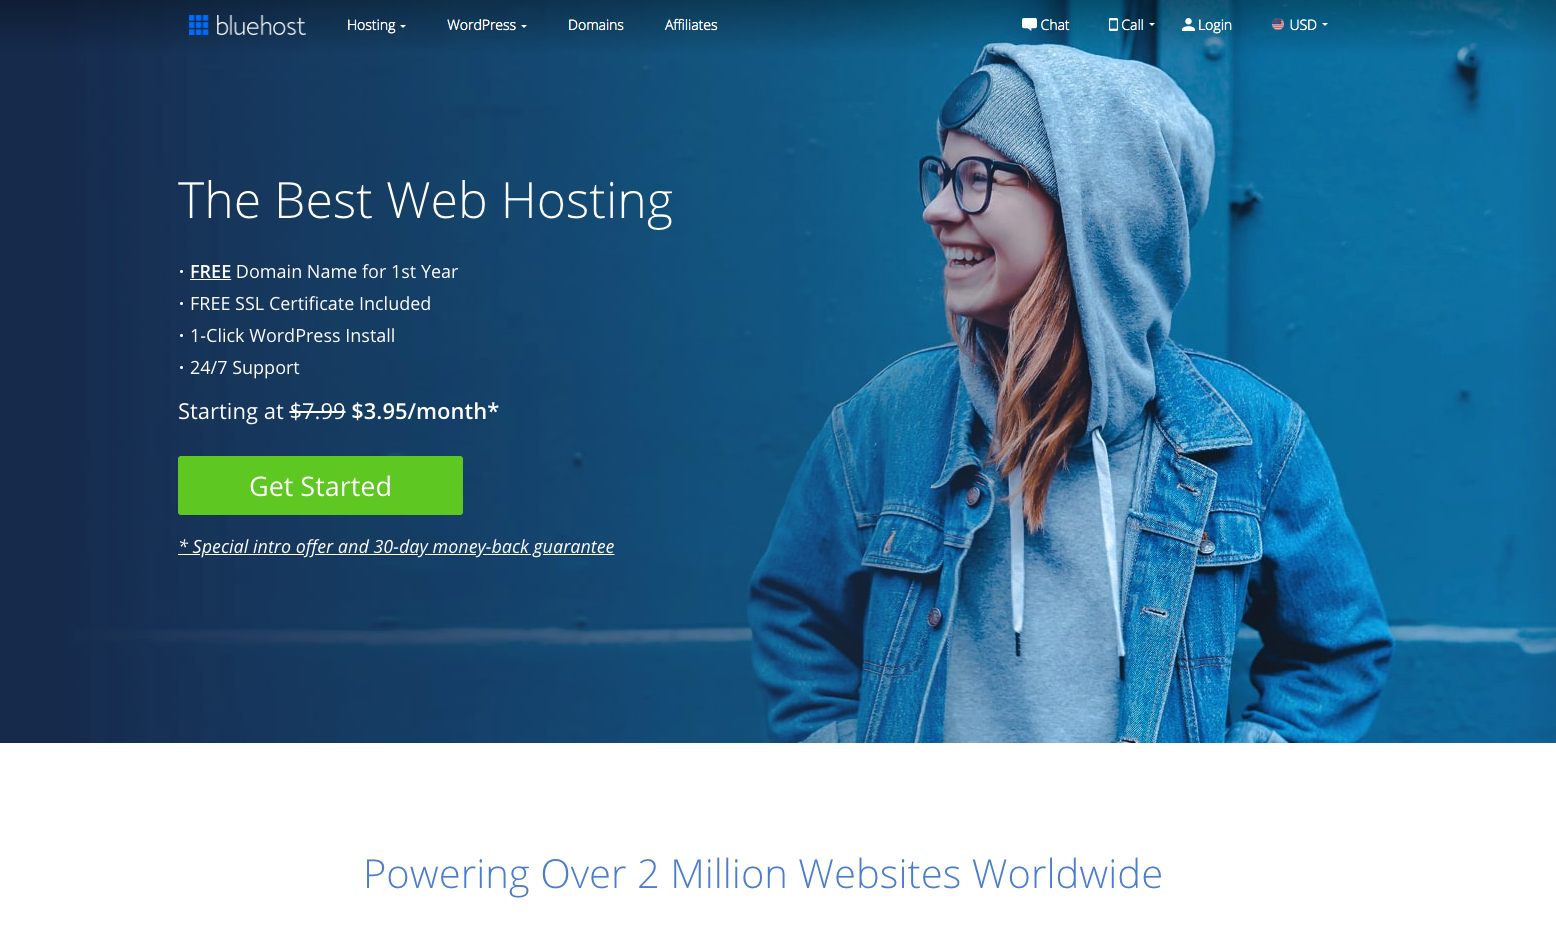 (1) Welcome to Bluehost.png